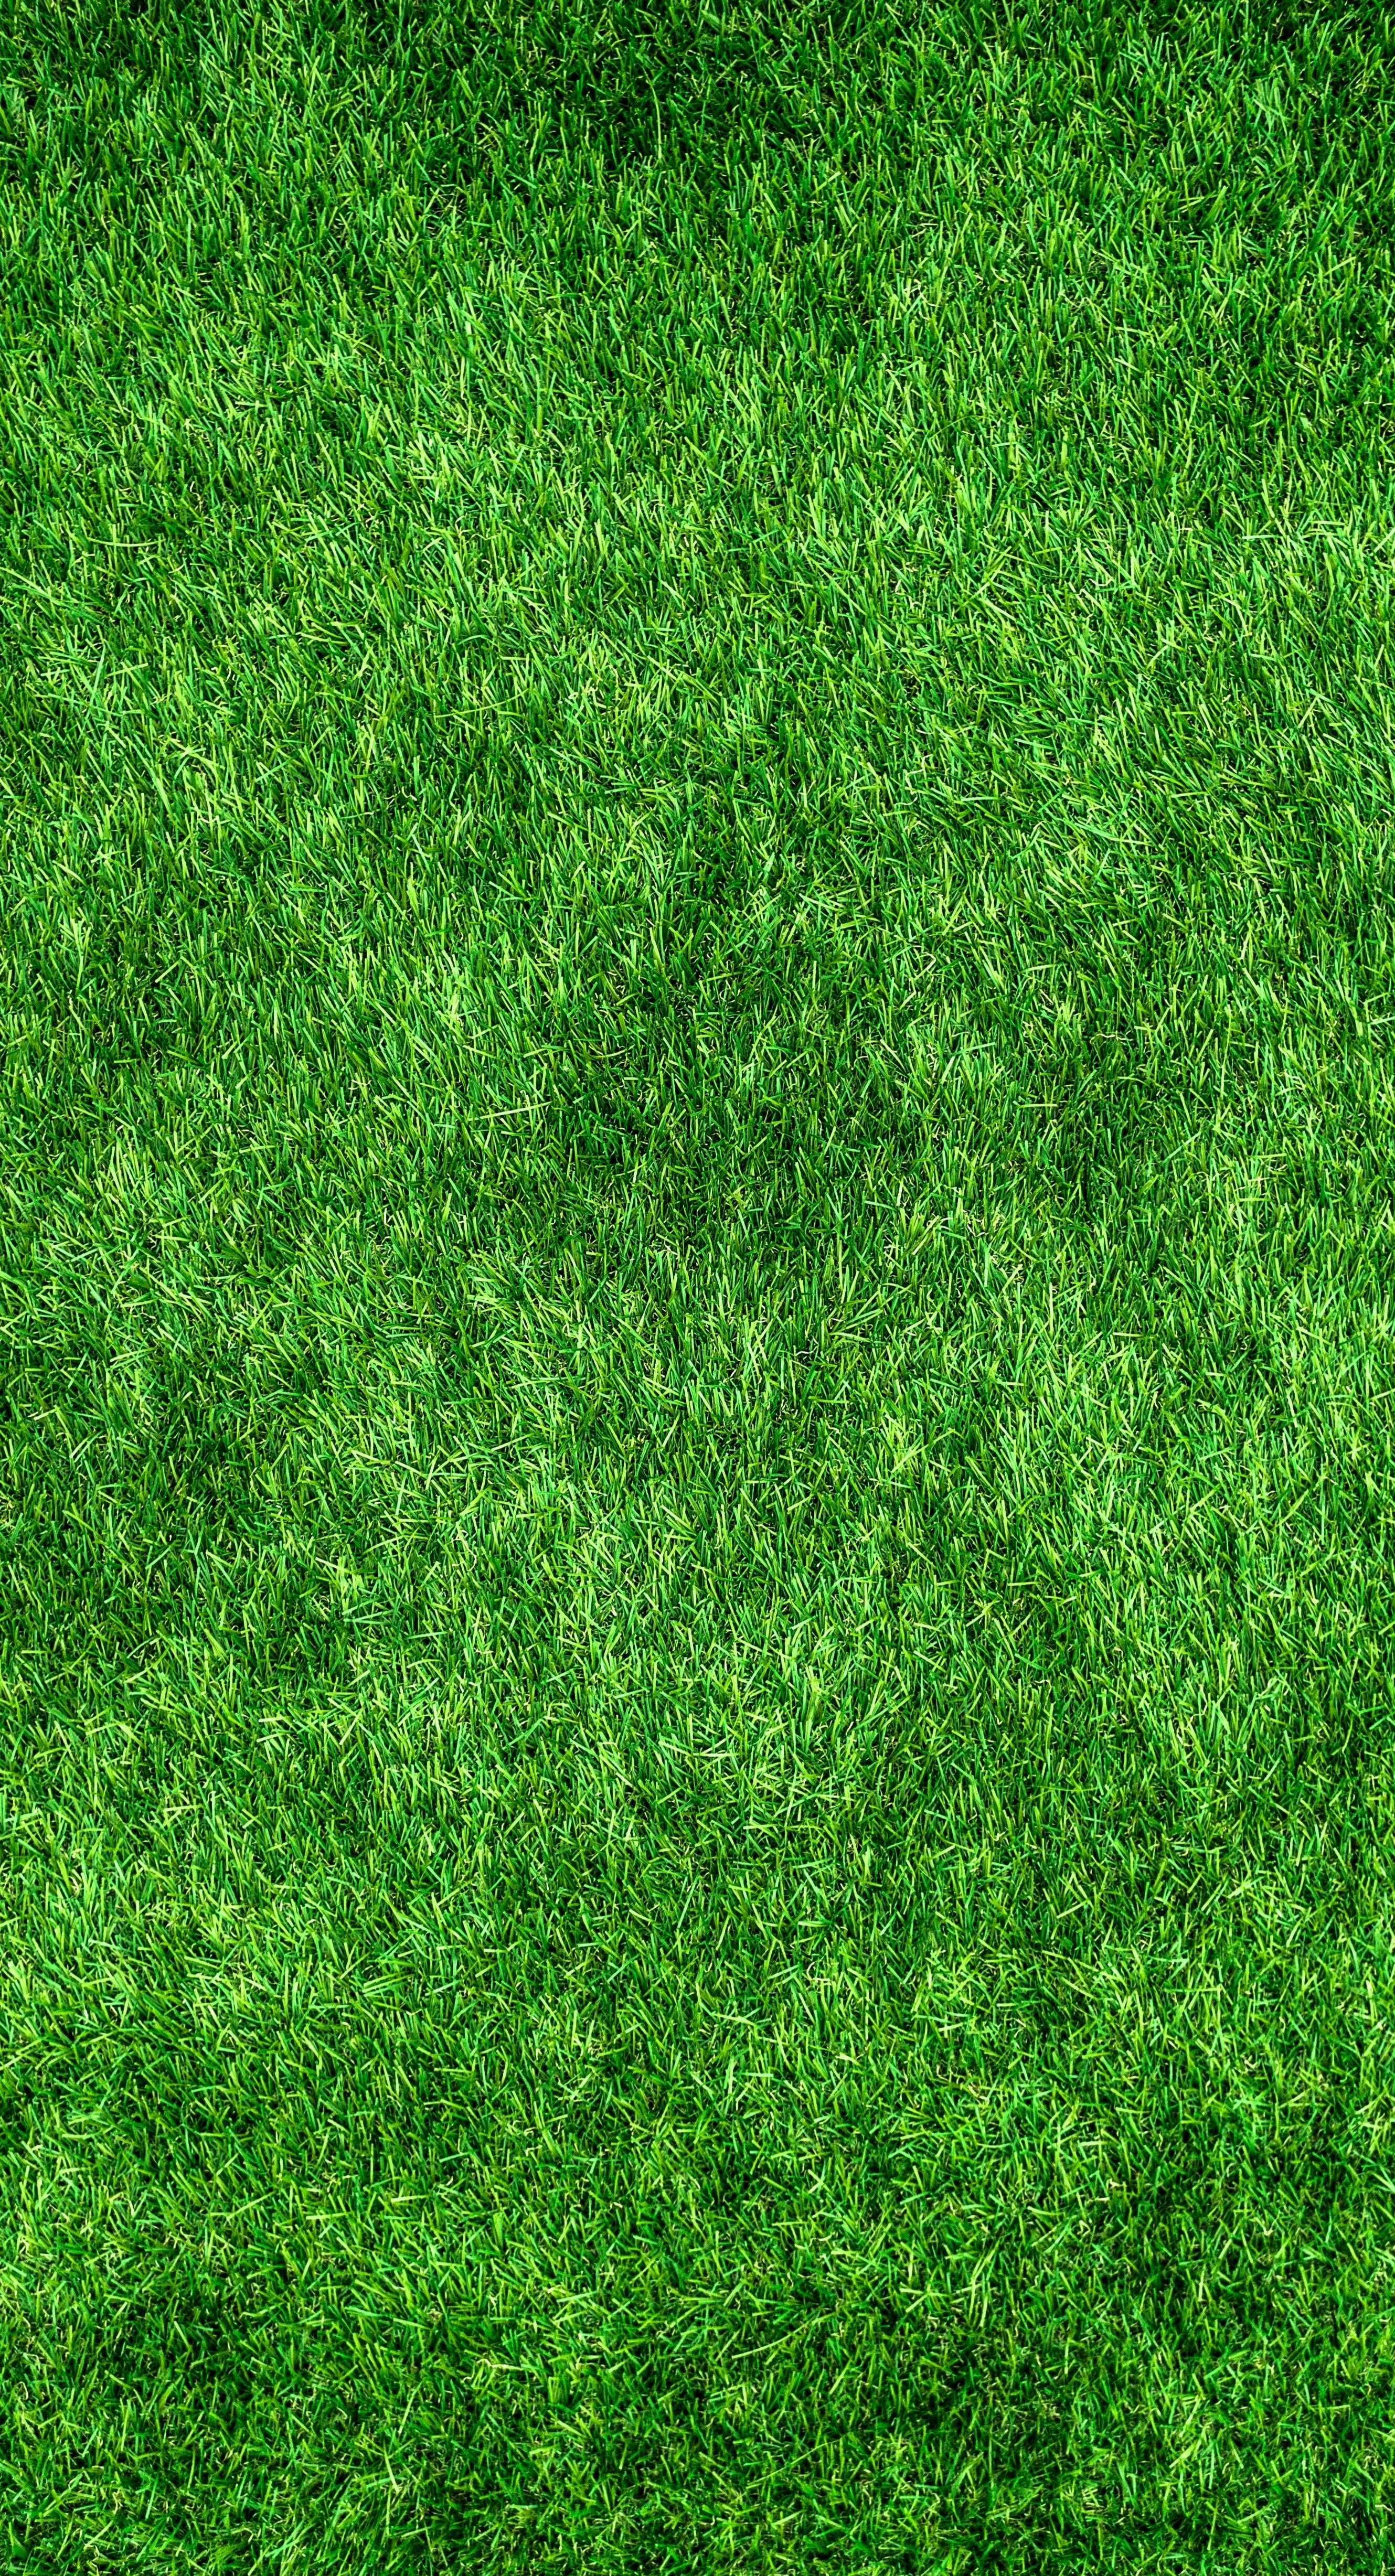 Free stock photo of abstract artificial turf background